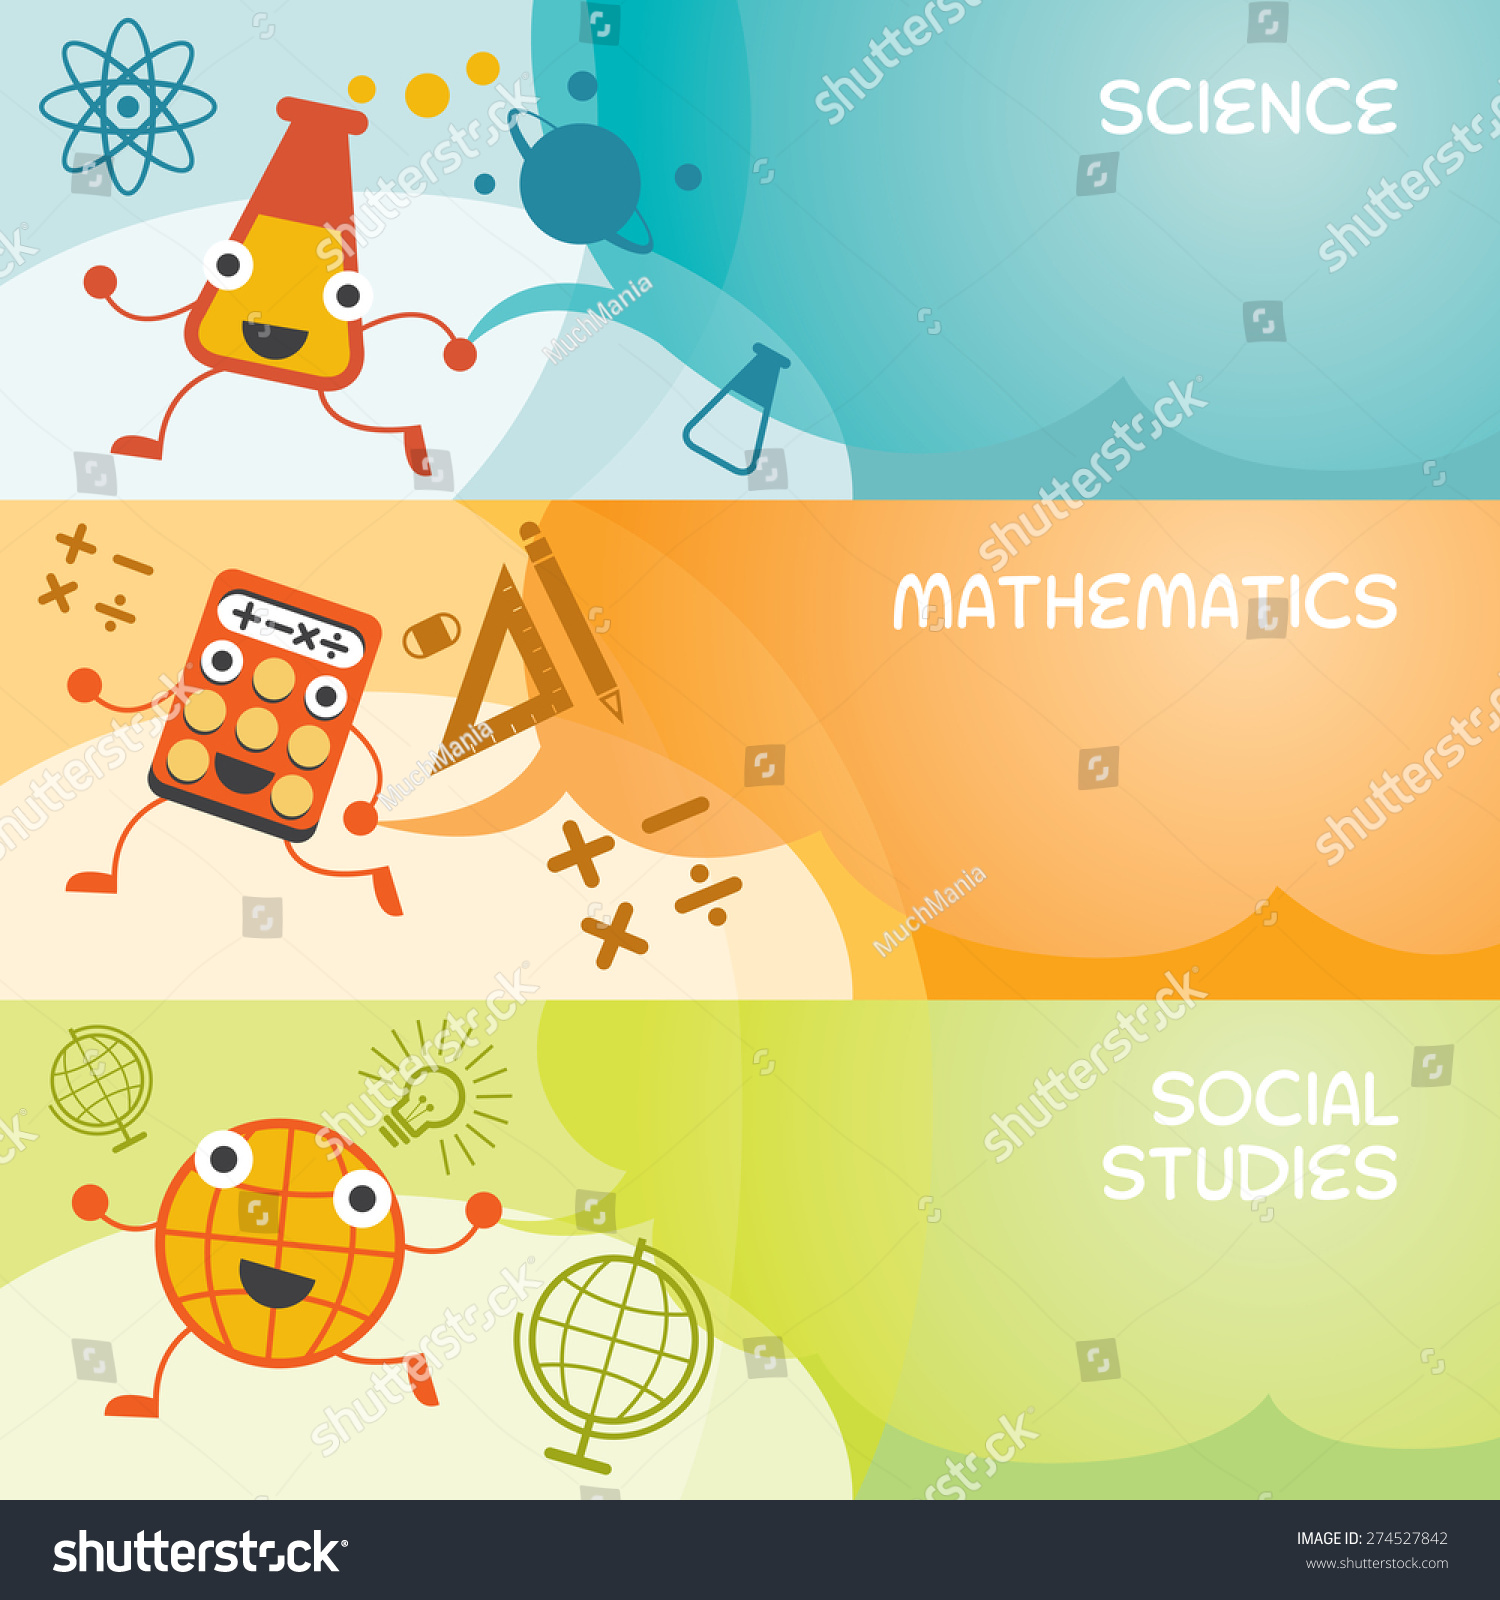 Education Characters Banner Science Math Social Stock Vector Royalty Free 274527842